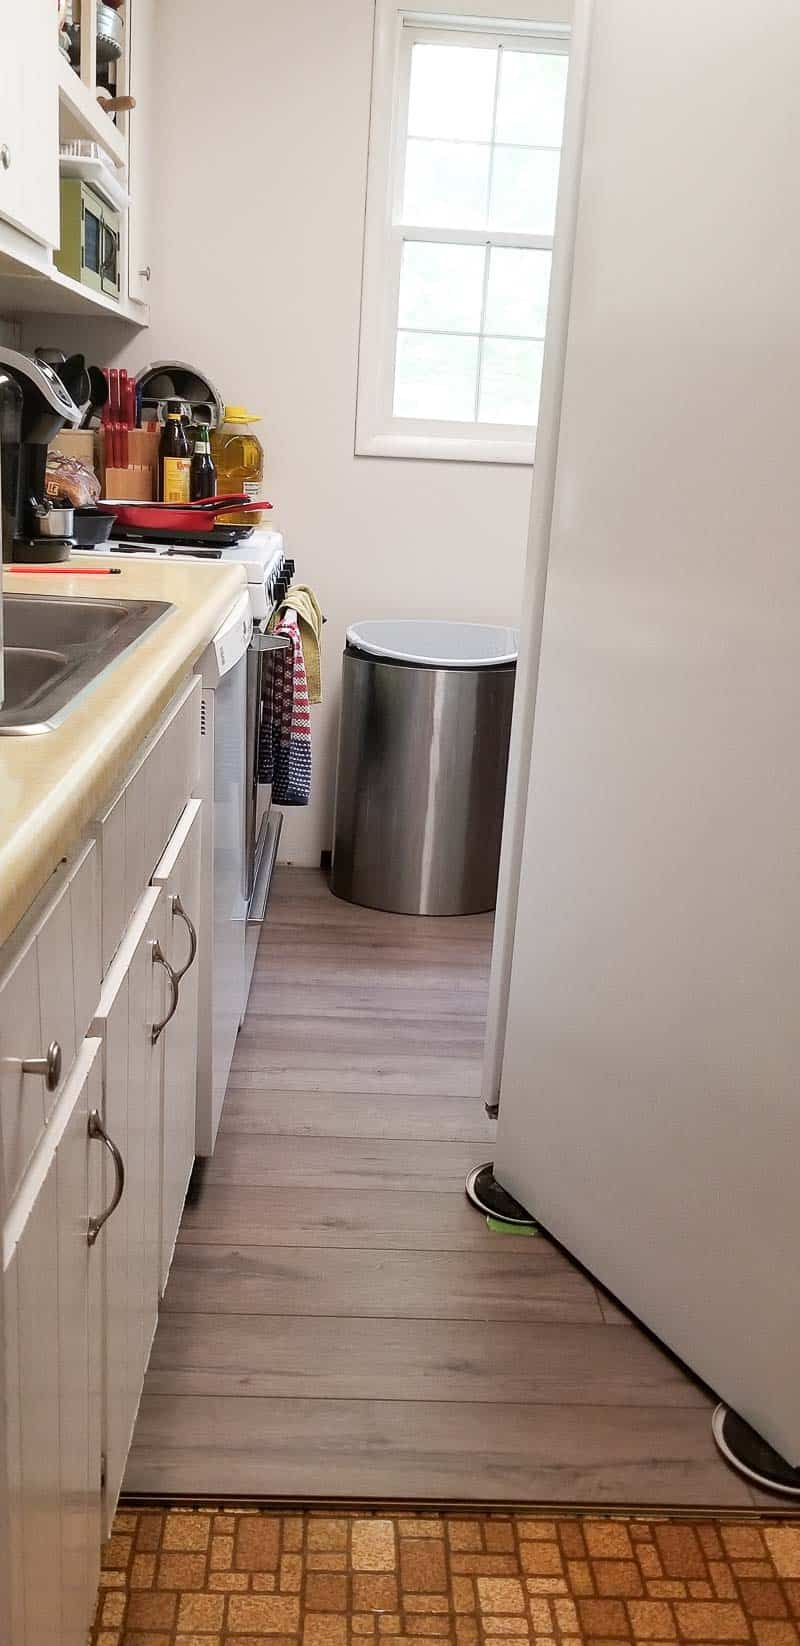 Refrigerator pulled away from wall and placed on new farmhouse plank flooring